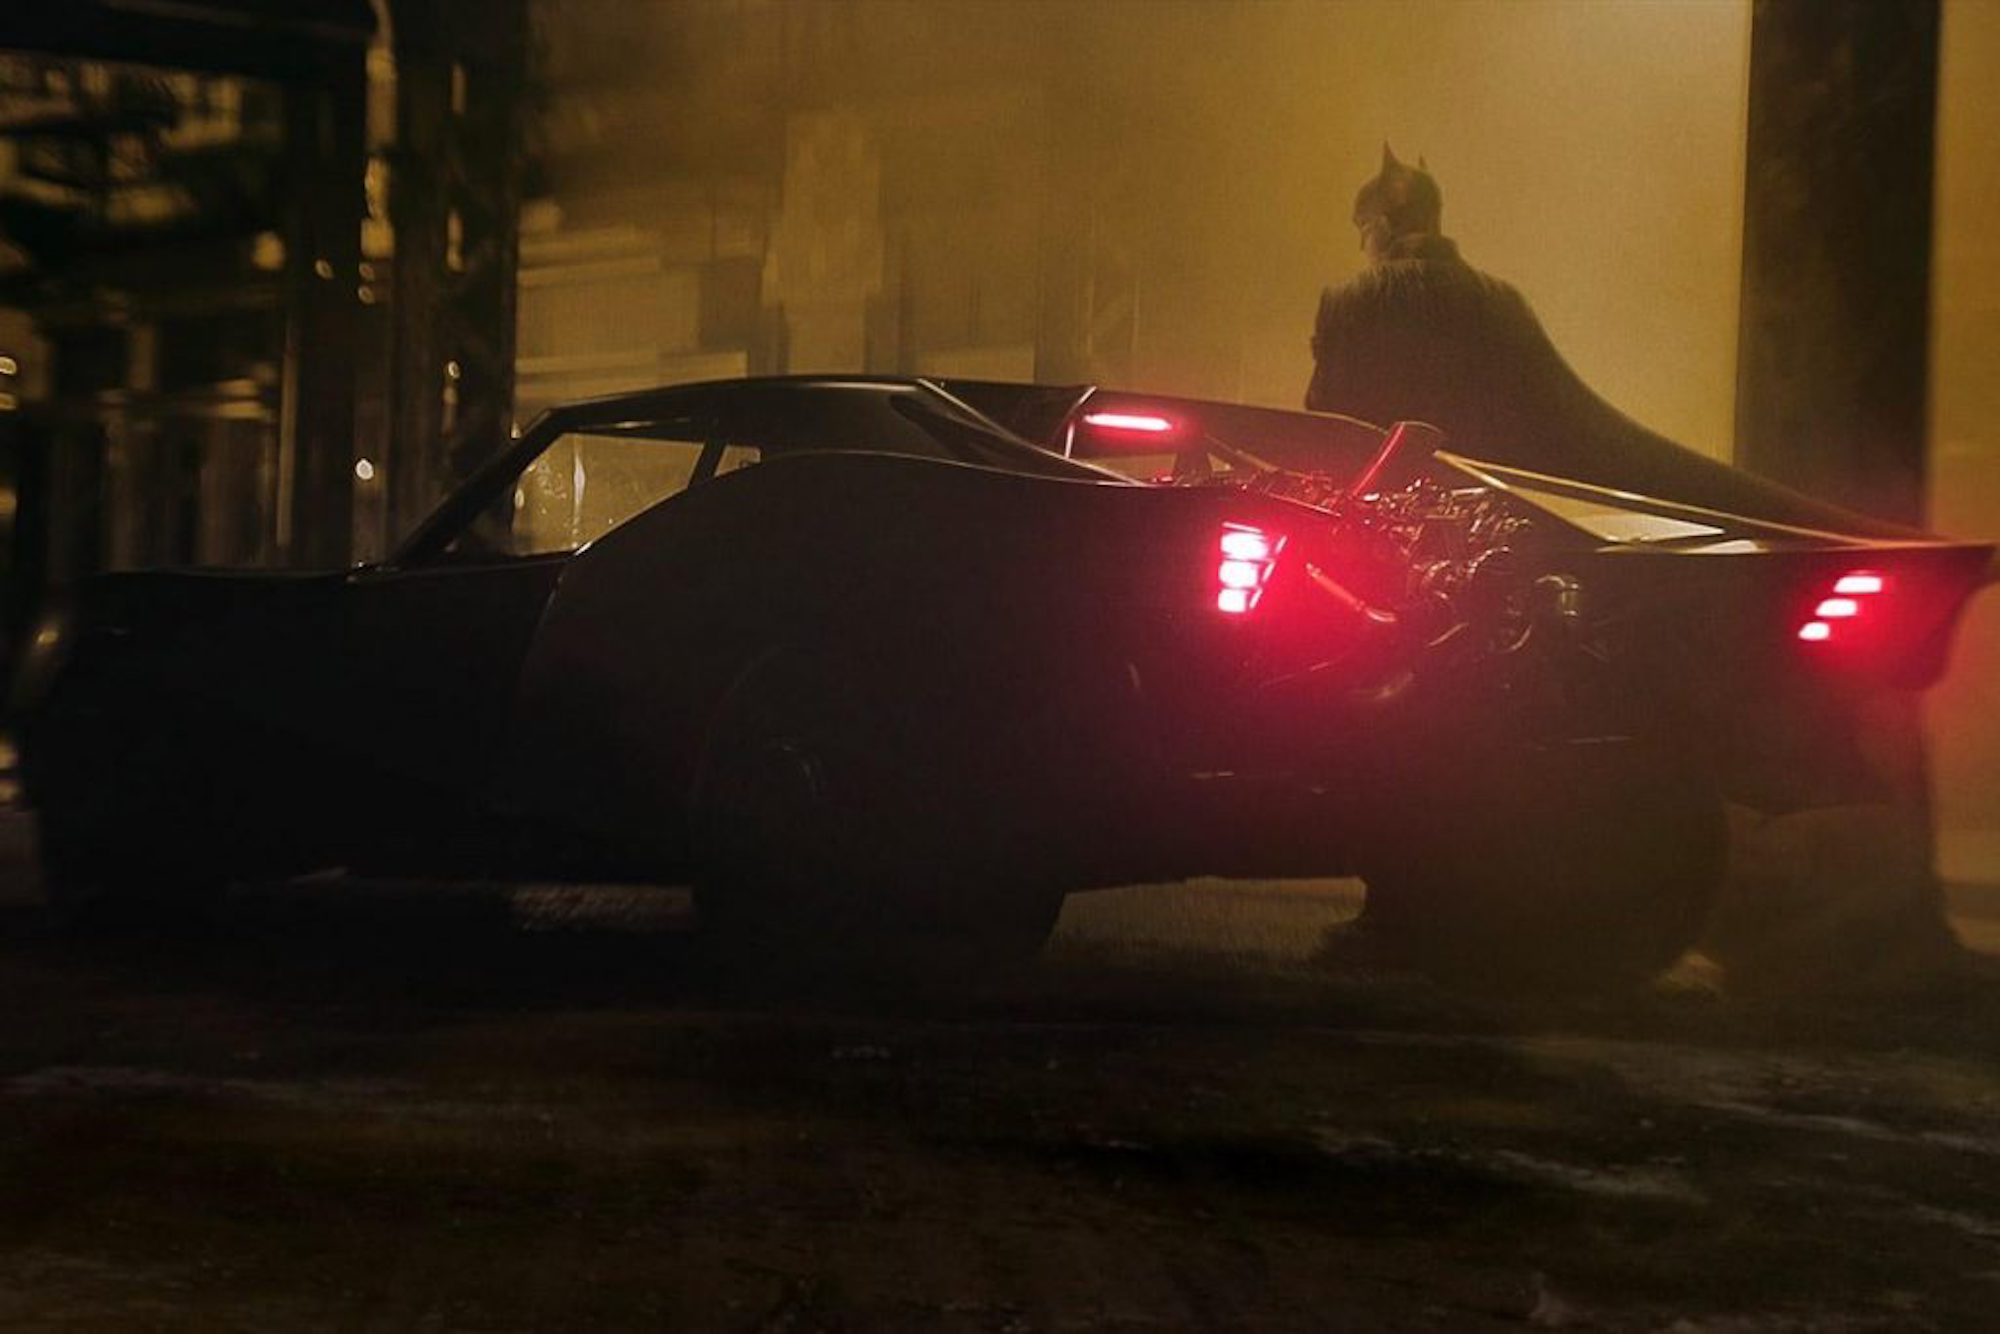 Matt Reeves debuts 'The Batman' trailer at DC FanDome